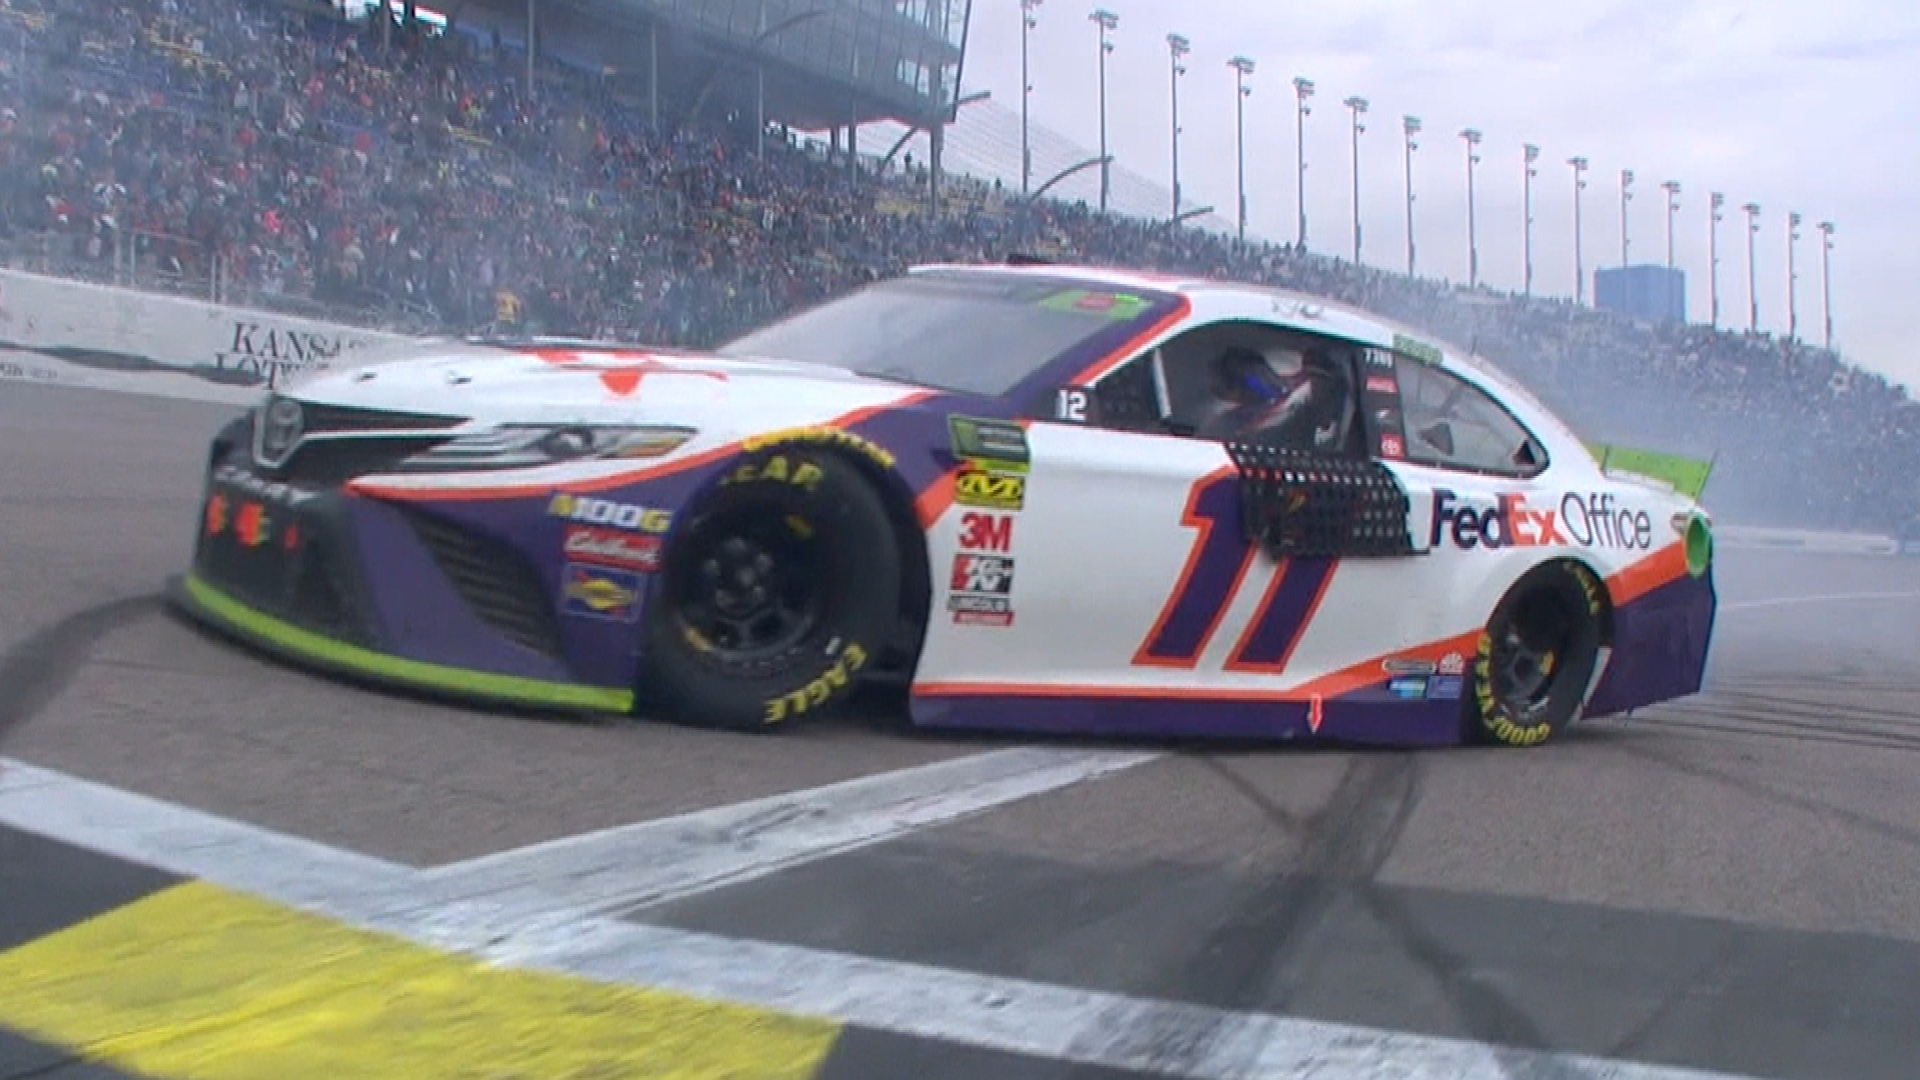 Denny Hamlin wins NASCAR Cup Series playoff race at Kansas Speedway